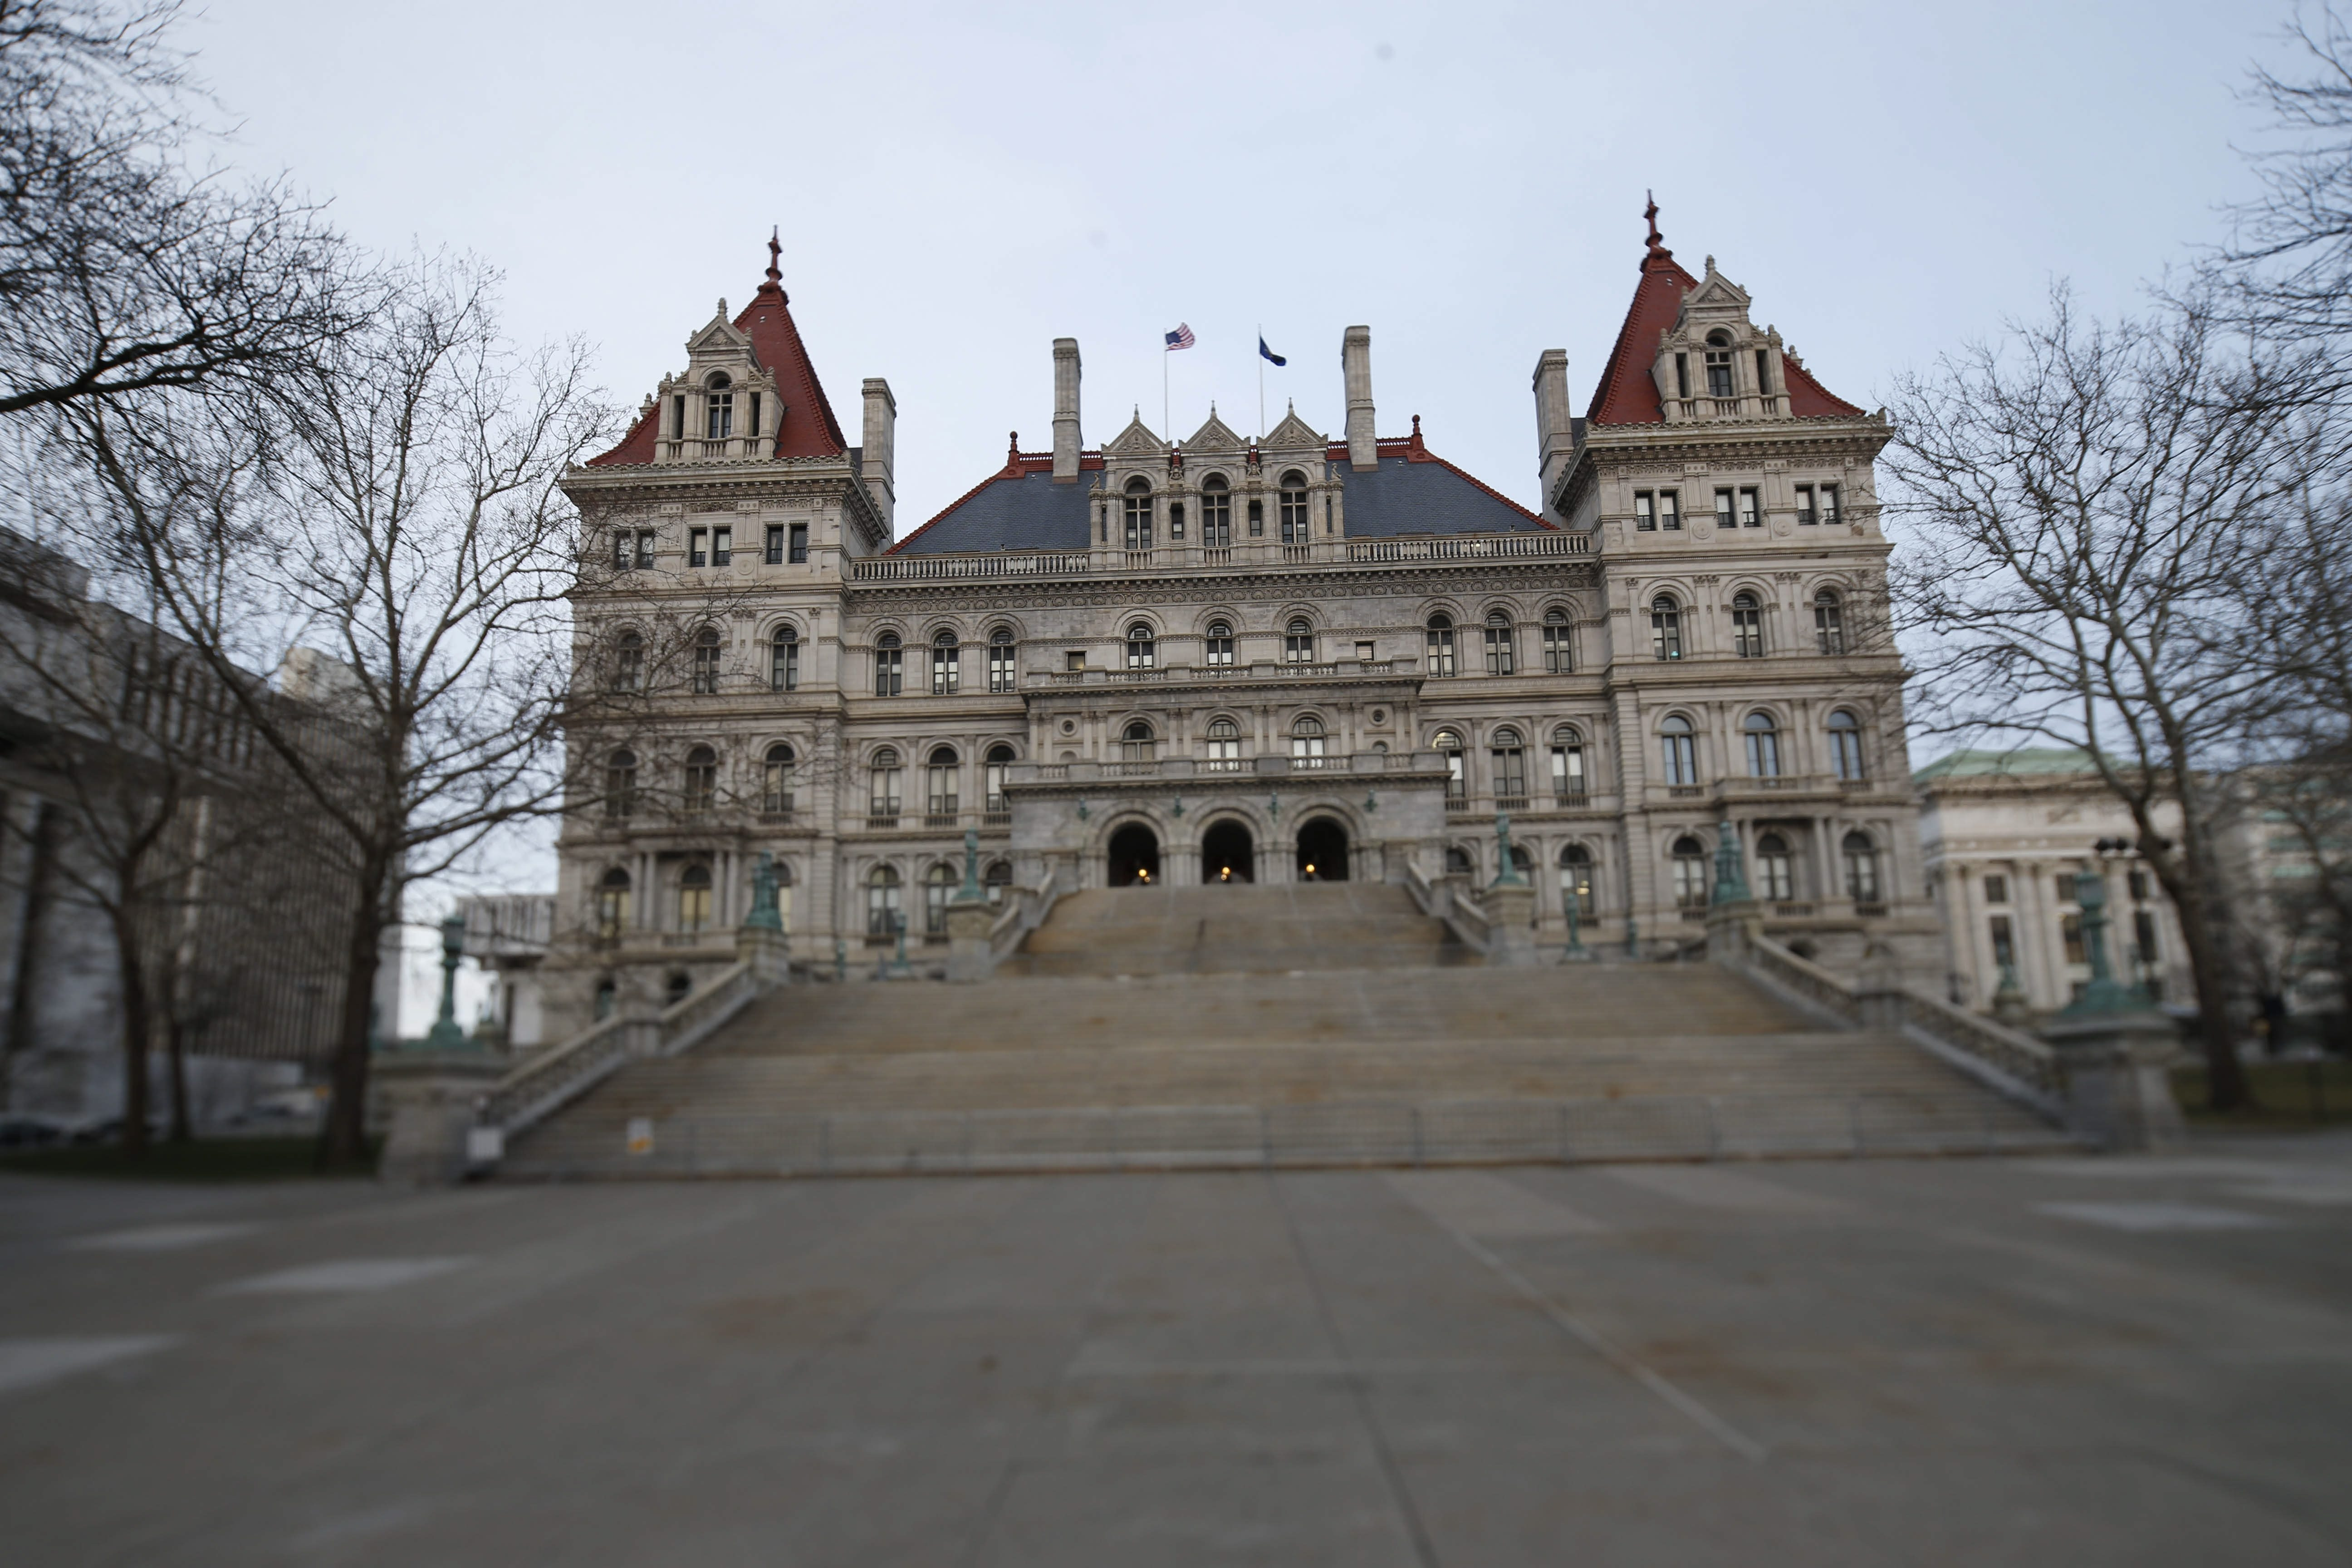 The State Legislature passed a number of laws that will benefit Western New York, but did not do enough to change the corrupt climate at the Capitol.